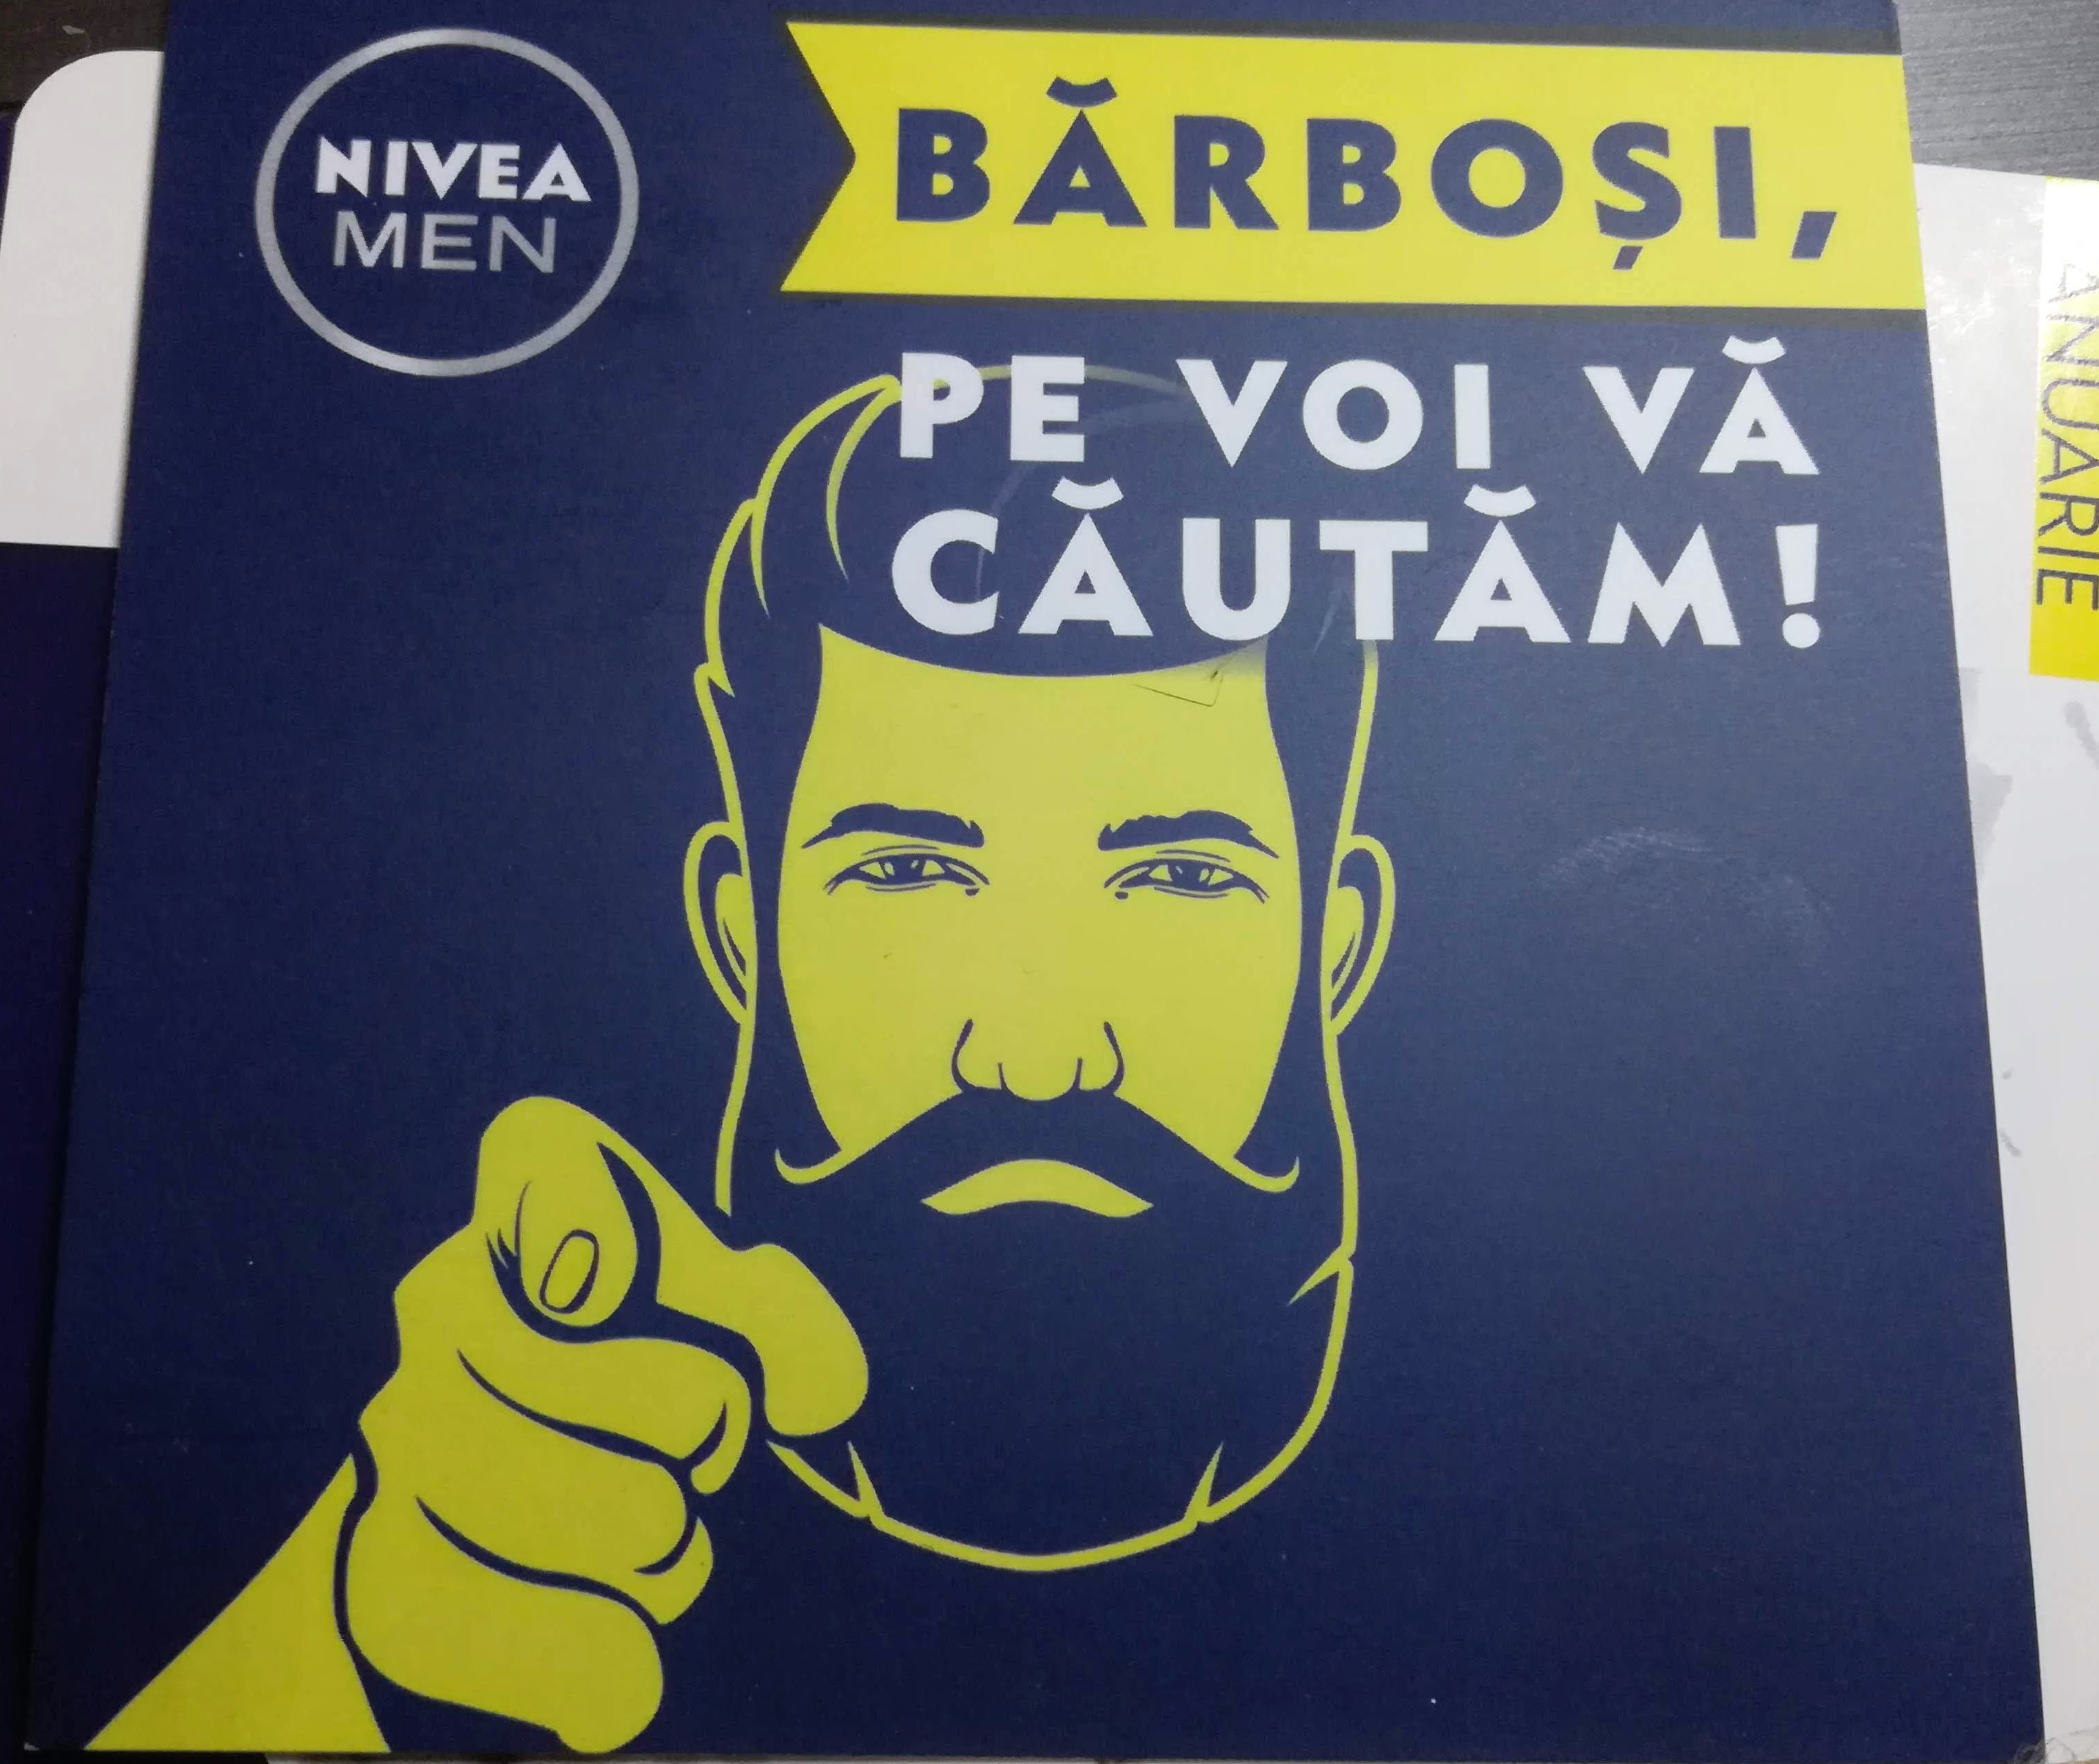 Nivea Men - cauta barbosi